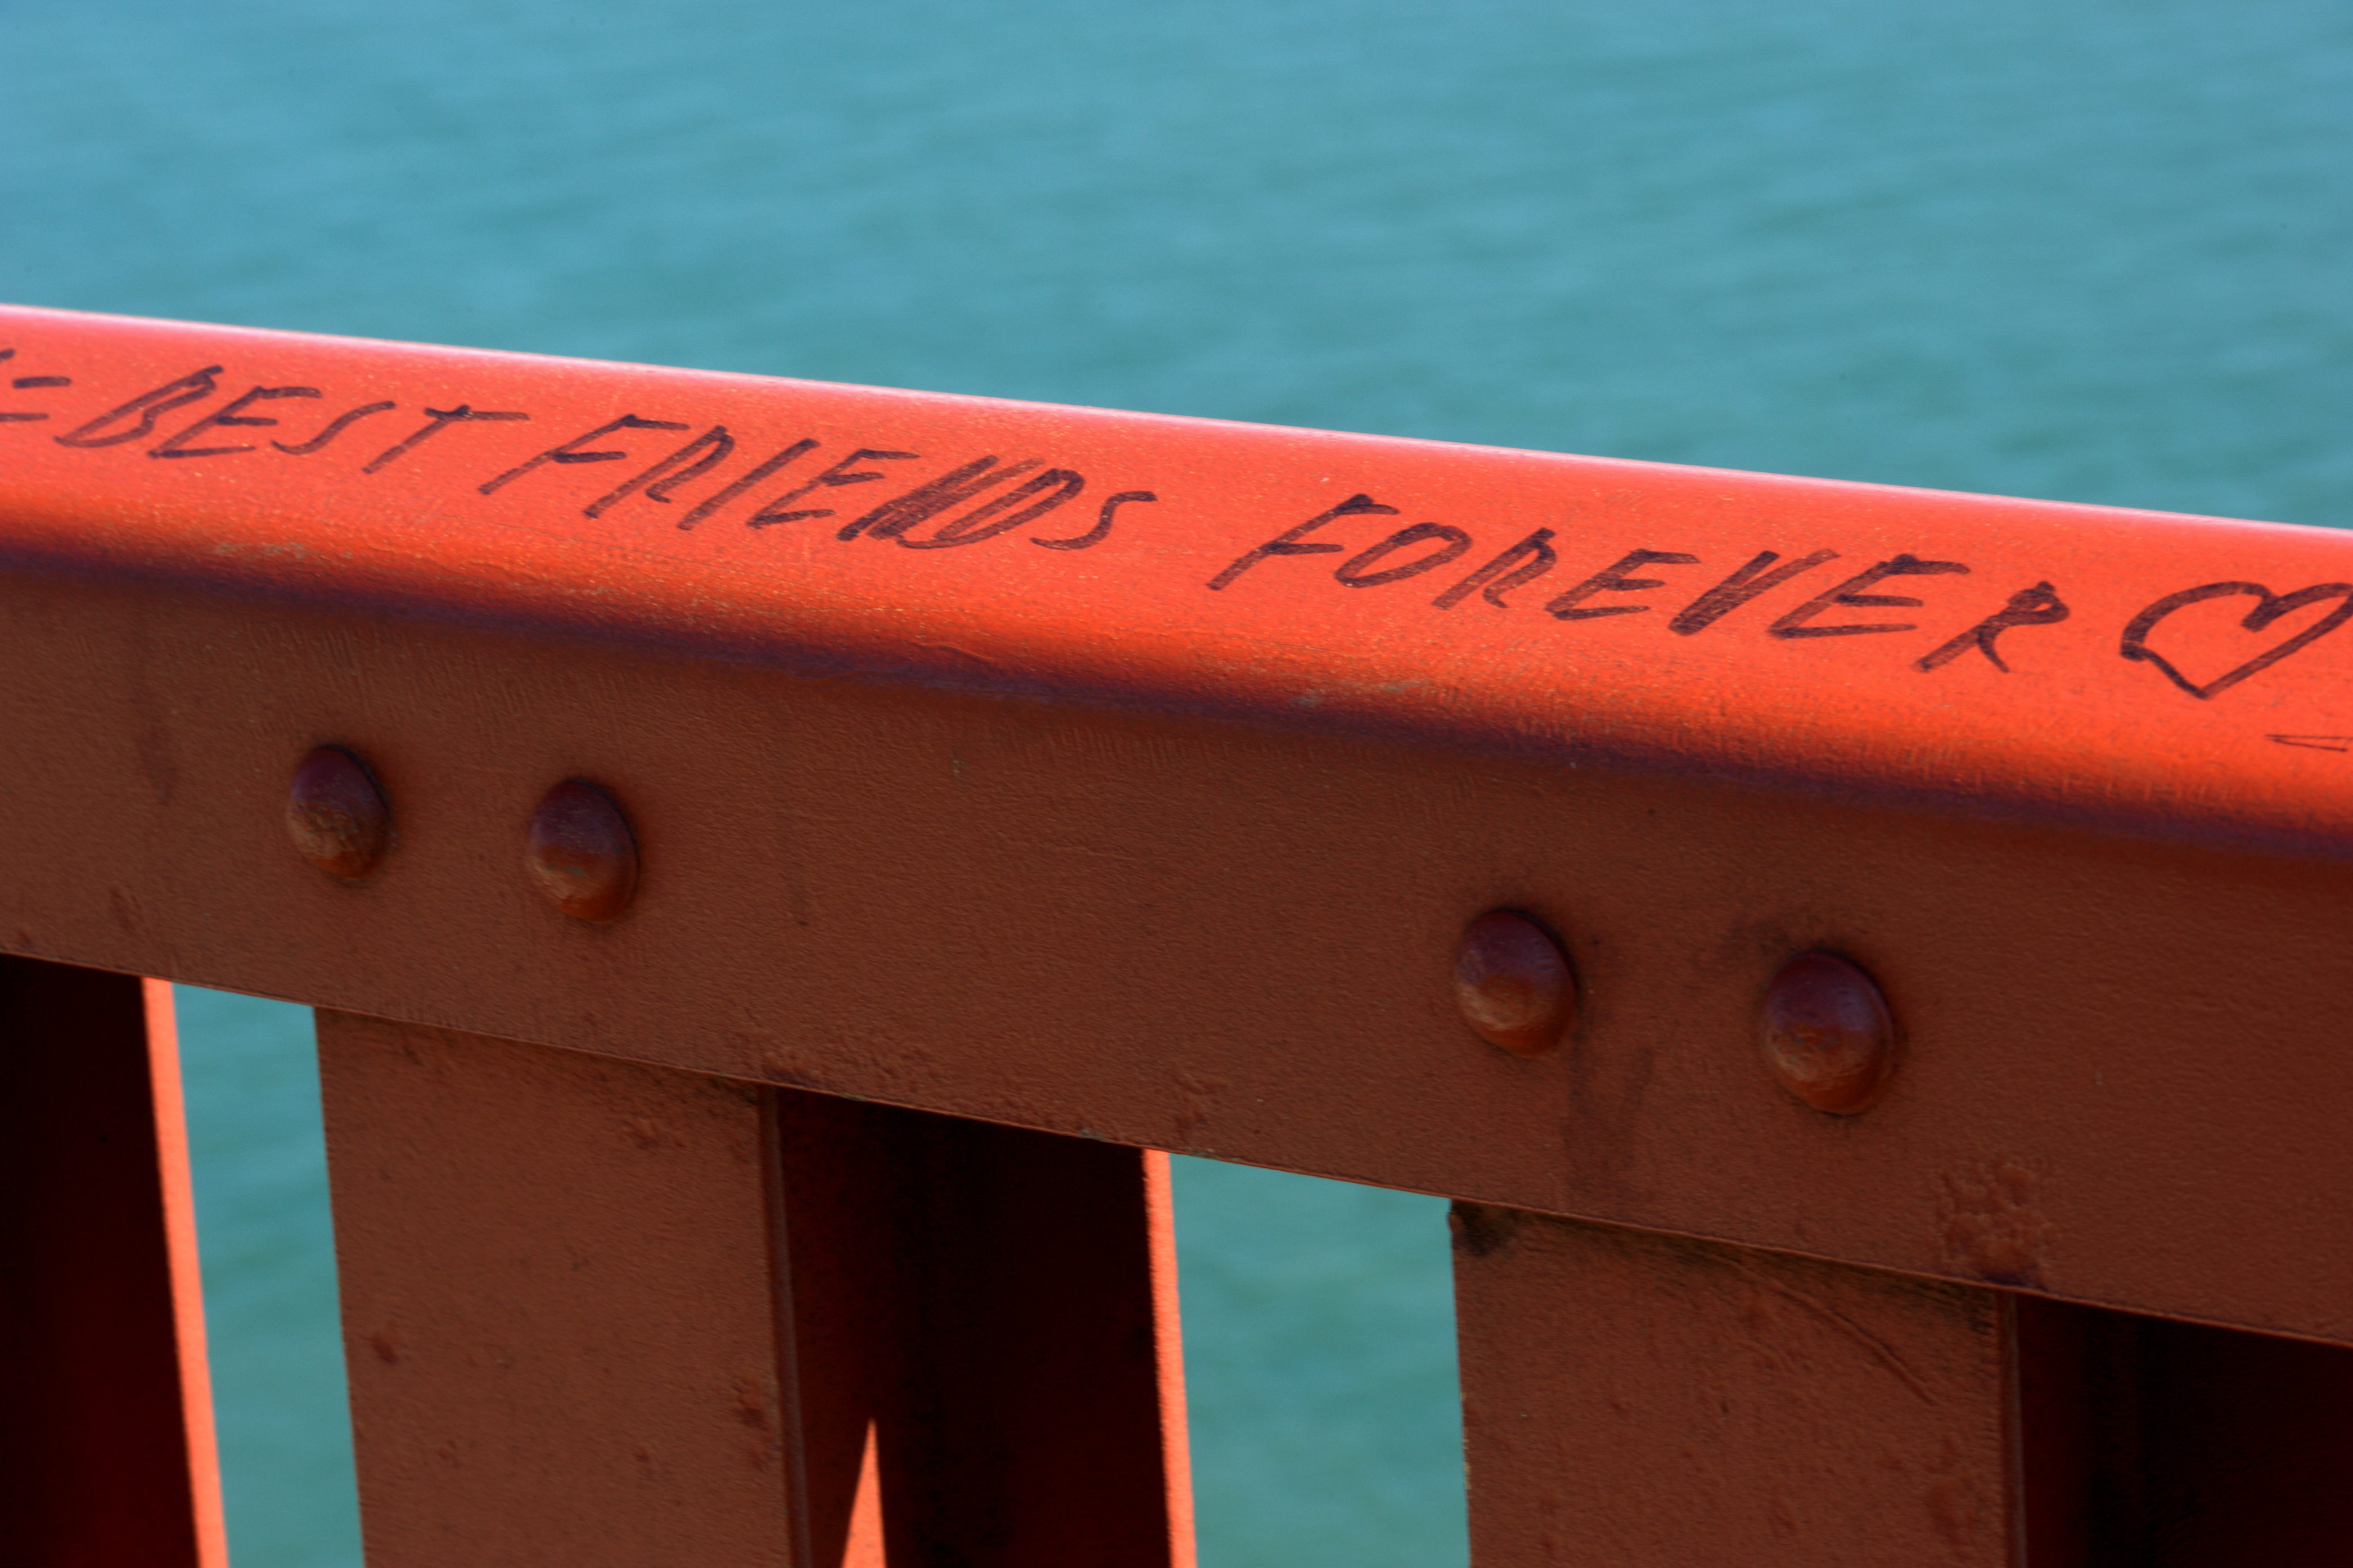 "Guard rail along the east sidewalk of the Golden Gate Bridge in San Francisco, California. A permanent marker inscription reads ""Best friends forever ?""."